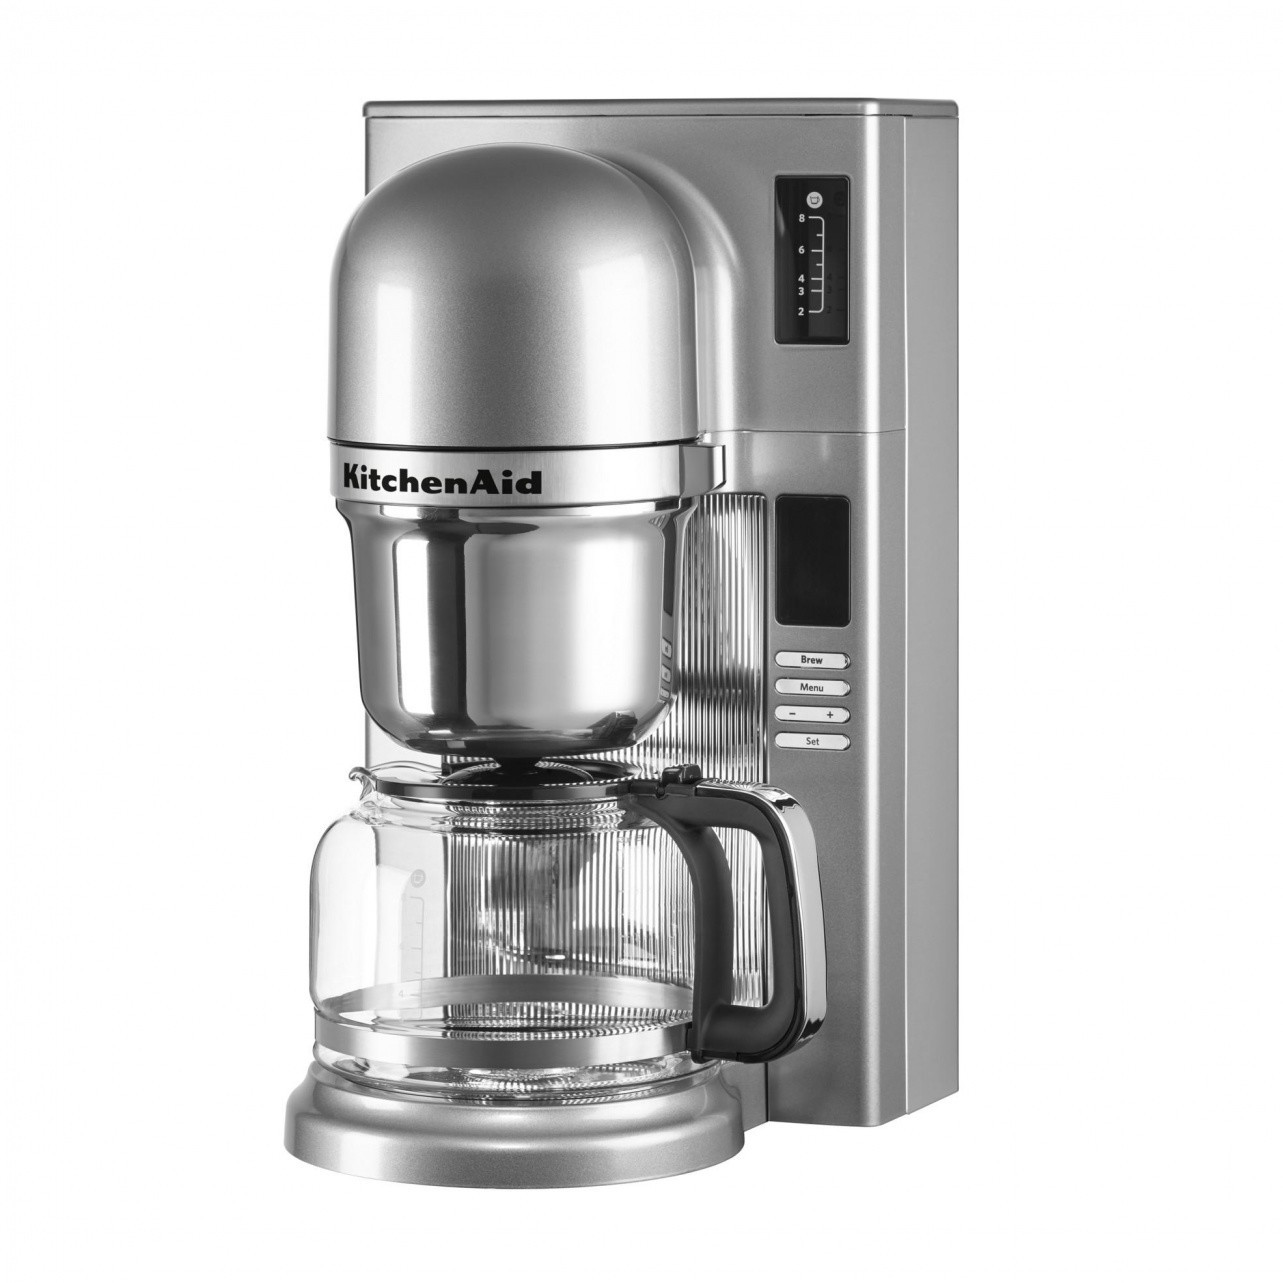 KitchenAid 5KCM0802 Pour Over Coffee Brewer   AmbienteDirect on 4 cup coffee makers, grind and brew coffee makers, nespresso coffee maker, mr coffee maker, personal coffee maker, 12 cup coffee maker, under cabinet coffee maker, 60 cup coffee maker, thermal coffee maker, capresso coffee maker, automatic coffee machines, black & decker coffee maker, viking coffee maker, cuisinart coffee maker, 14 cup coffee maker, dual coffee maker, starbucks coffee maker, vacuum coffee maker, blue coffee maker, coffee maker grinder, 1 cup coffee maker, spacemaker coffee maker, braun coffee maker, target red coffee maker, farberware coffee maker, 4 cup coffee maker, thermal carafe coffee maker, black and decker coffee maker, bunn coffee maker,